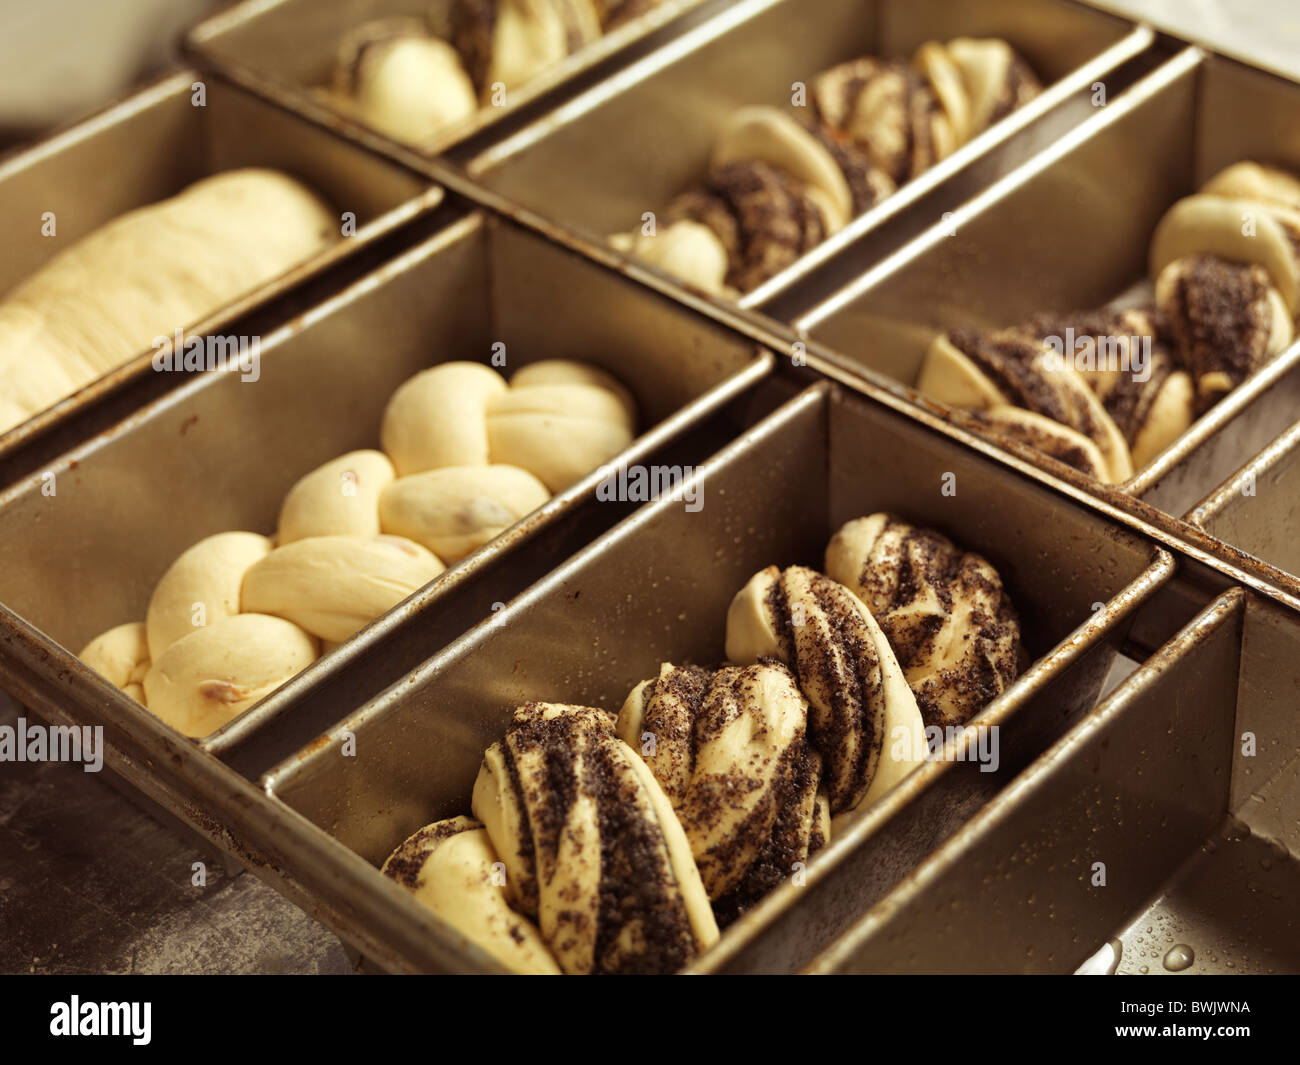 Closeup of sweet raw bread in baking tray forms - Stock Image